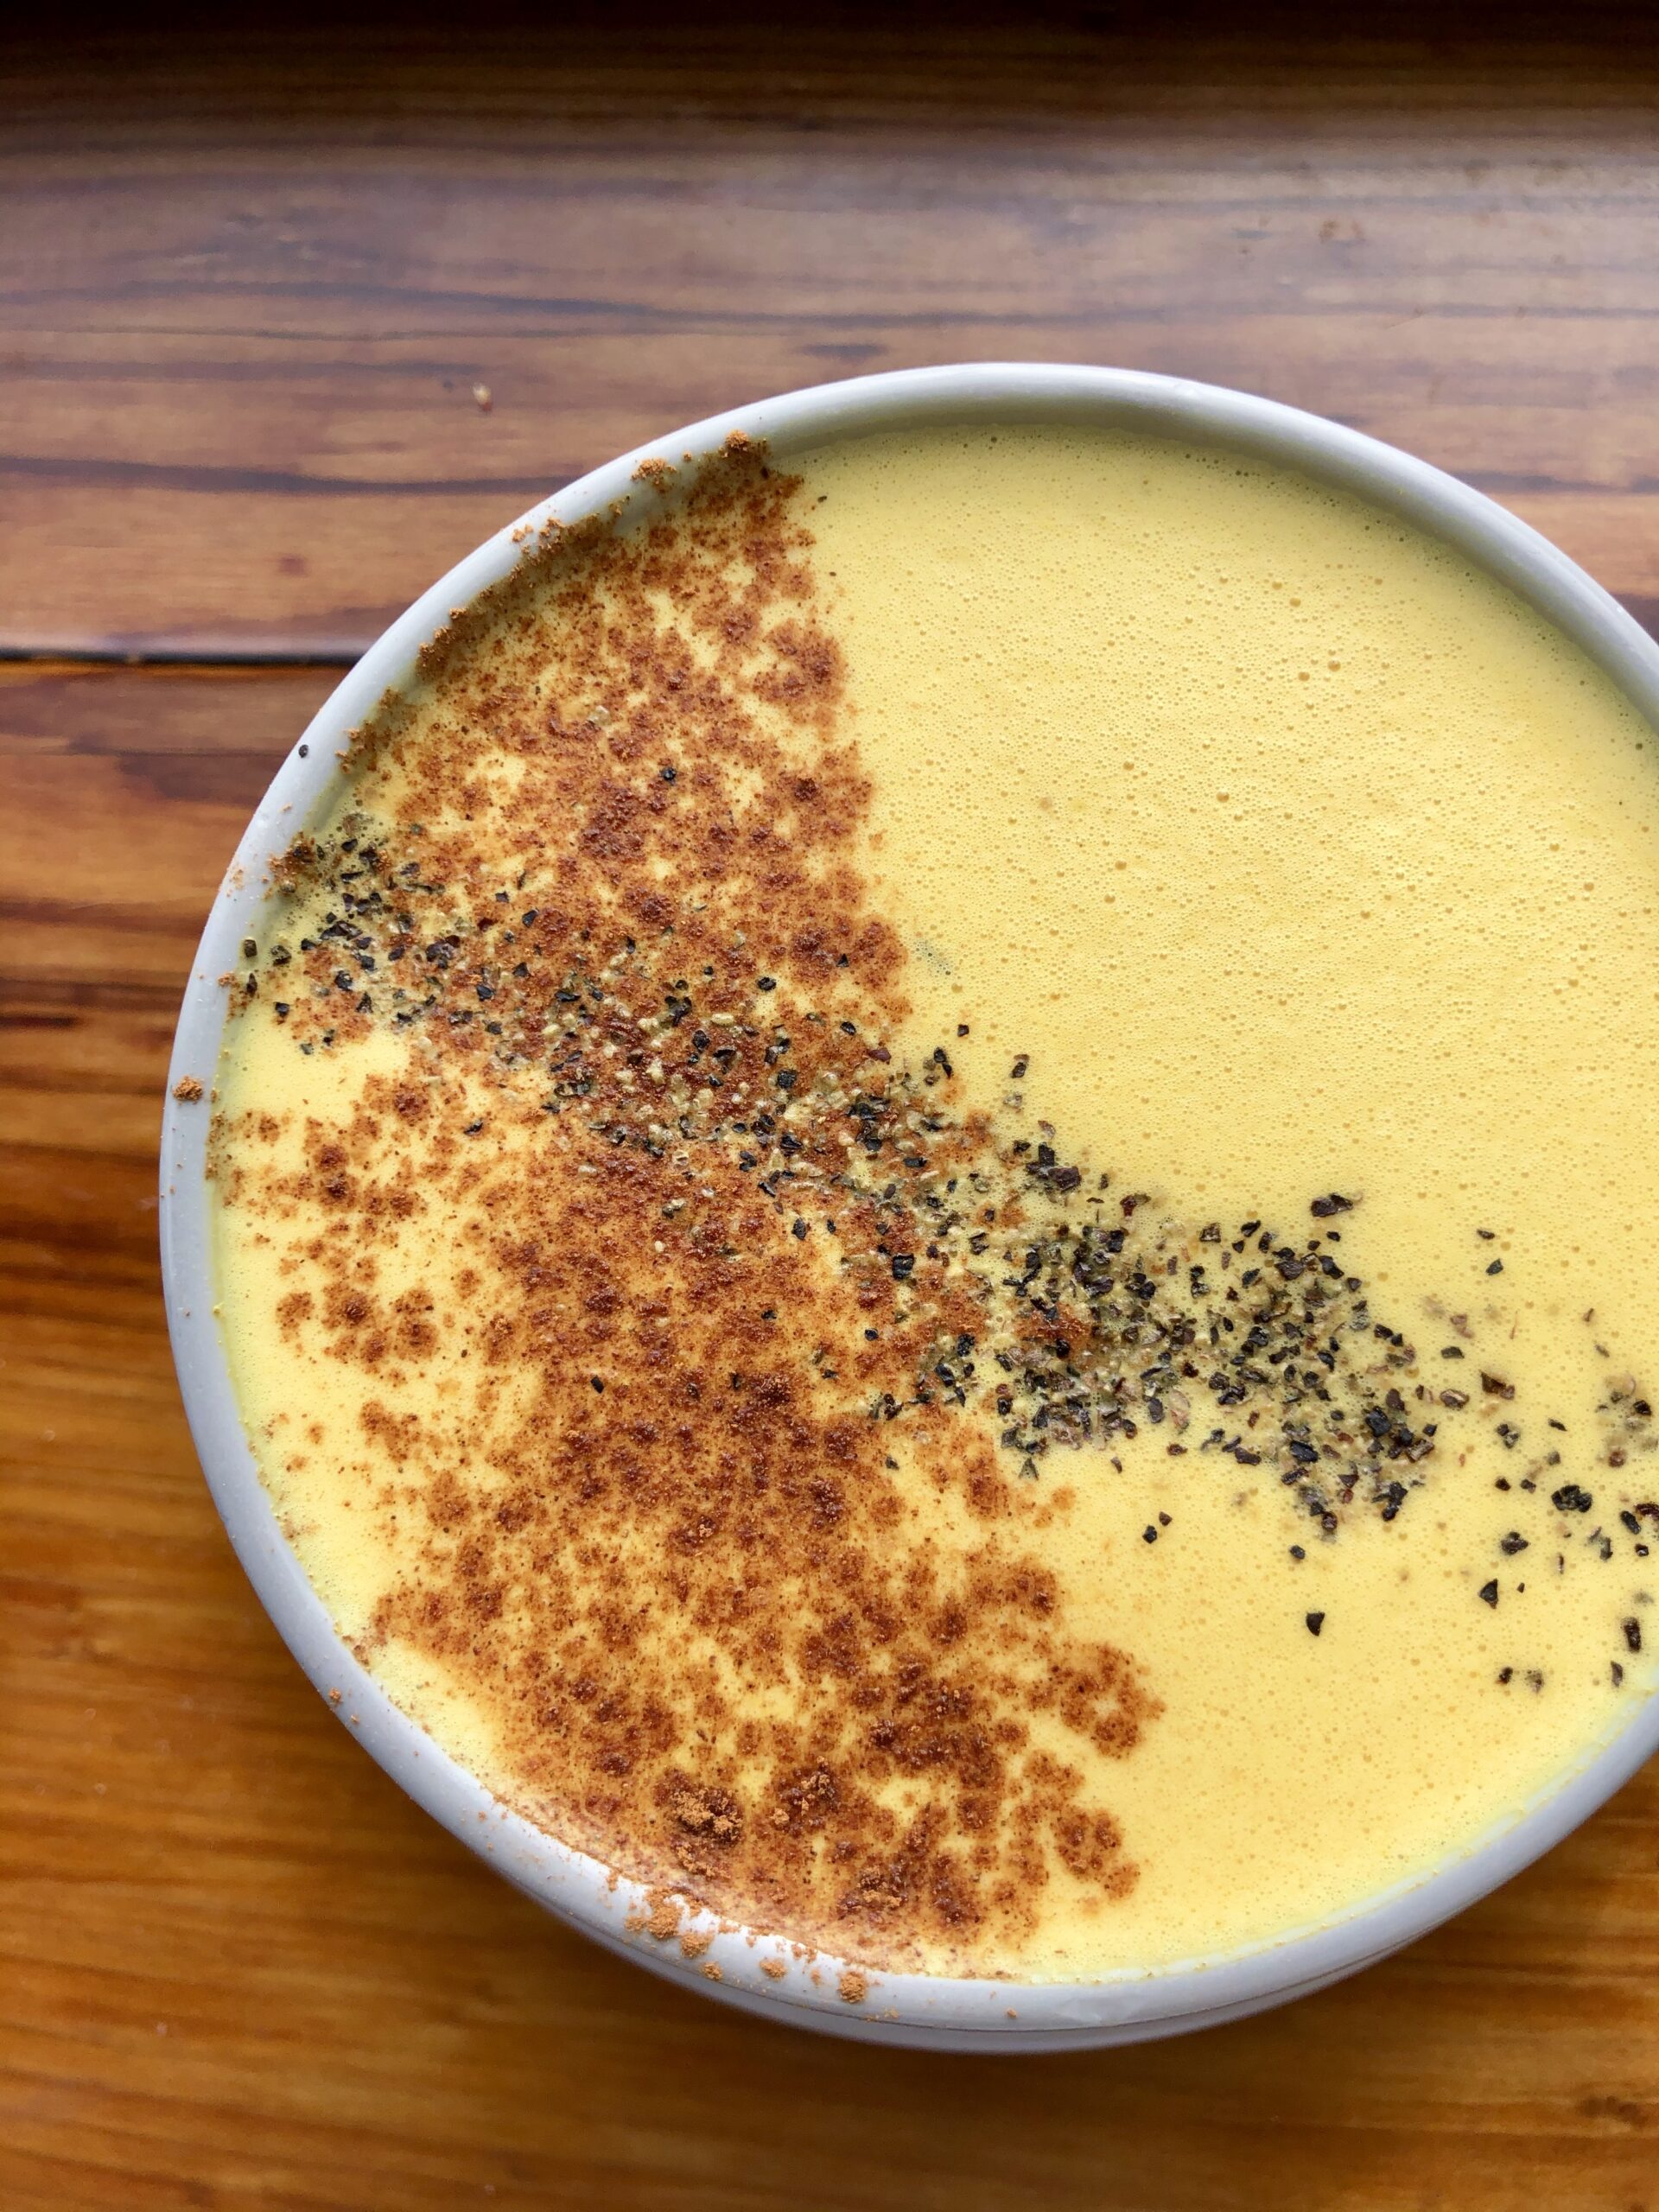 Golden Milk with Turmeric, Ginger, and Cracked Black Pepper